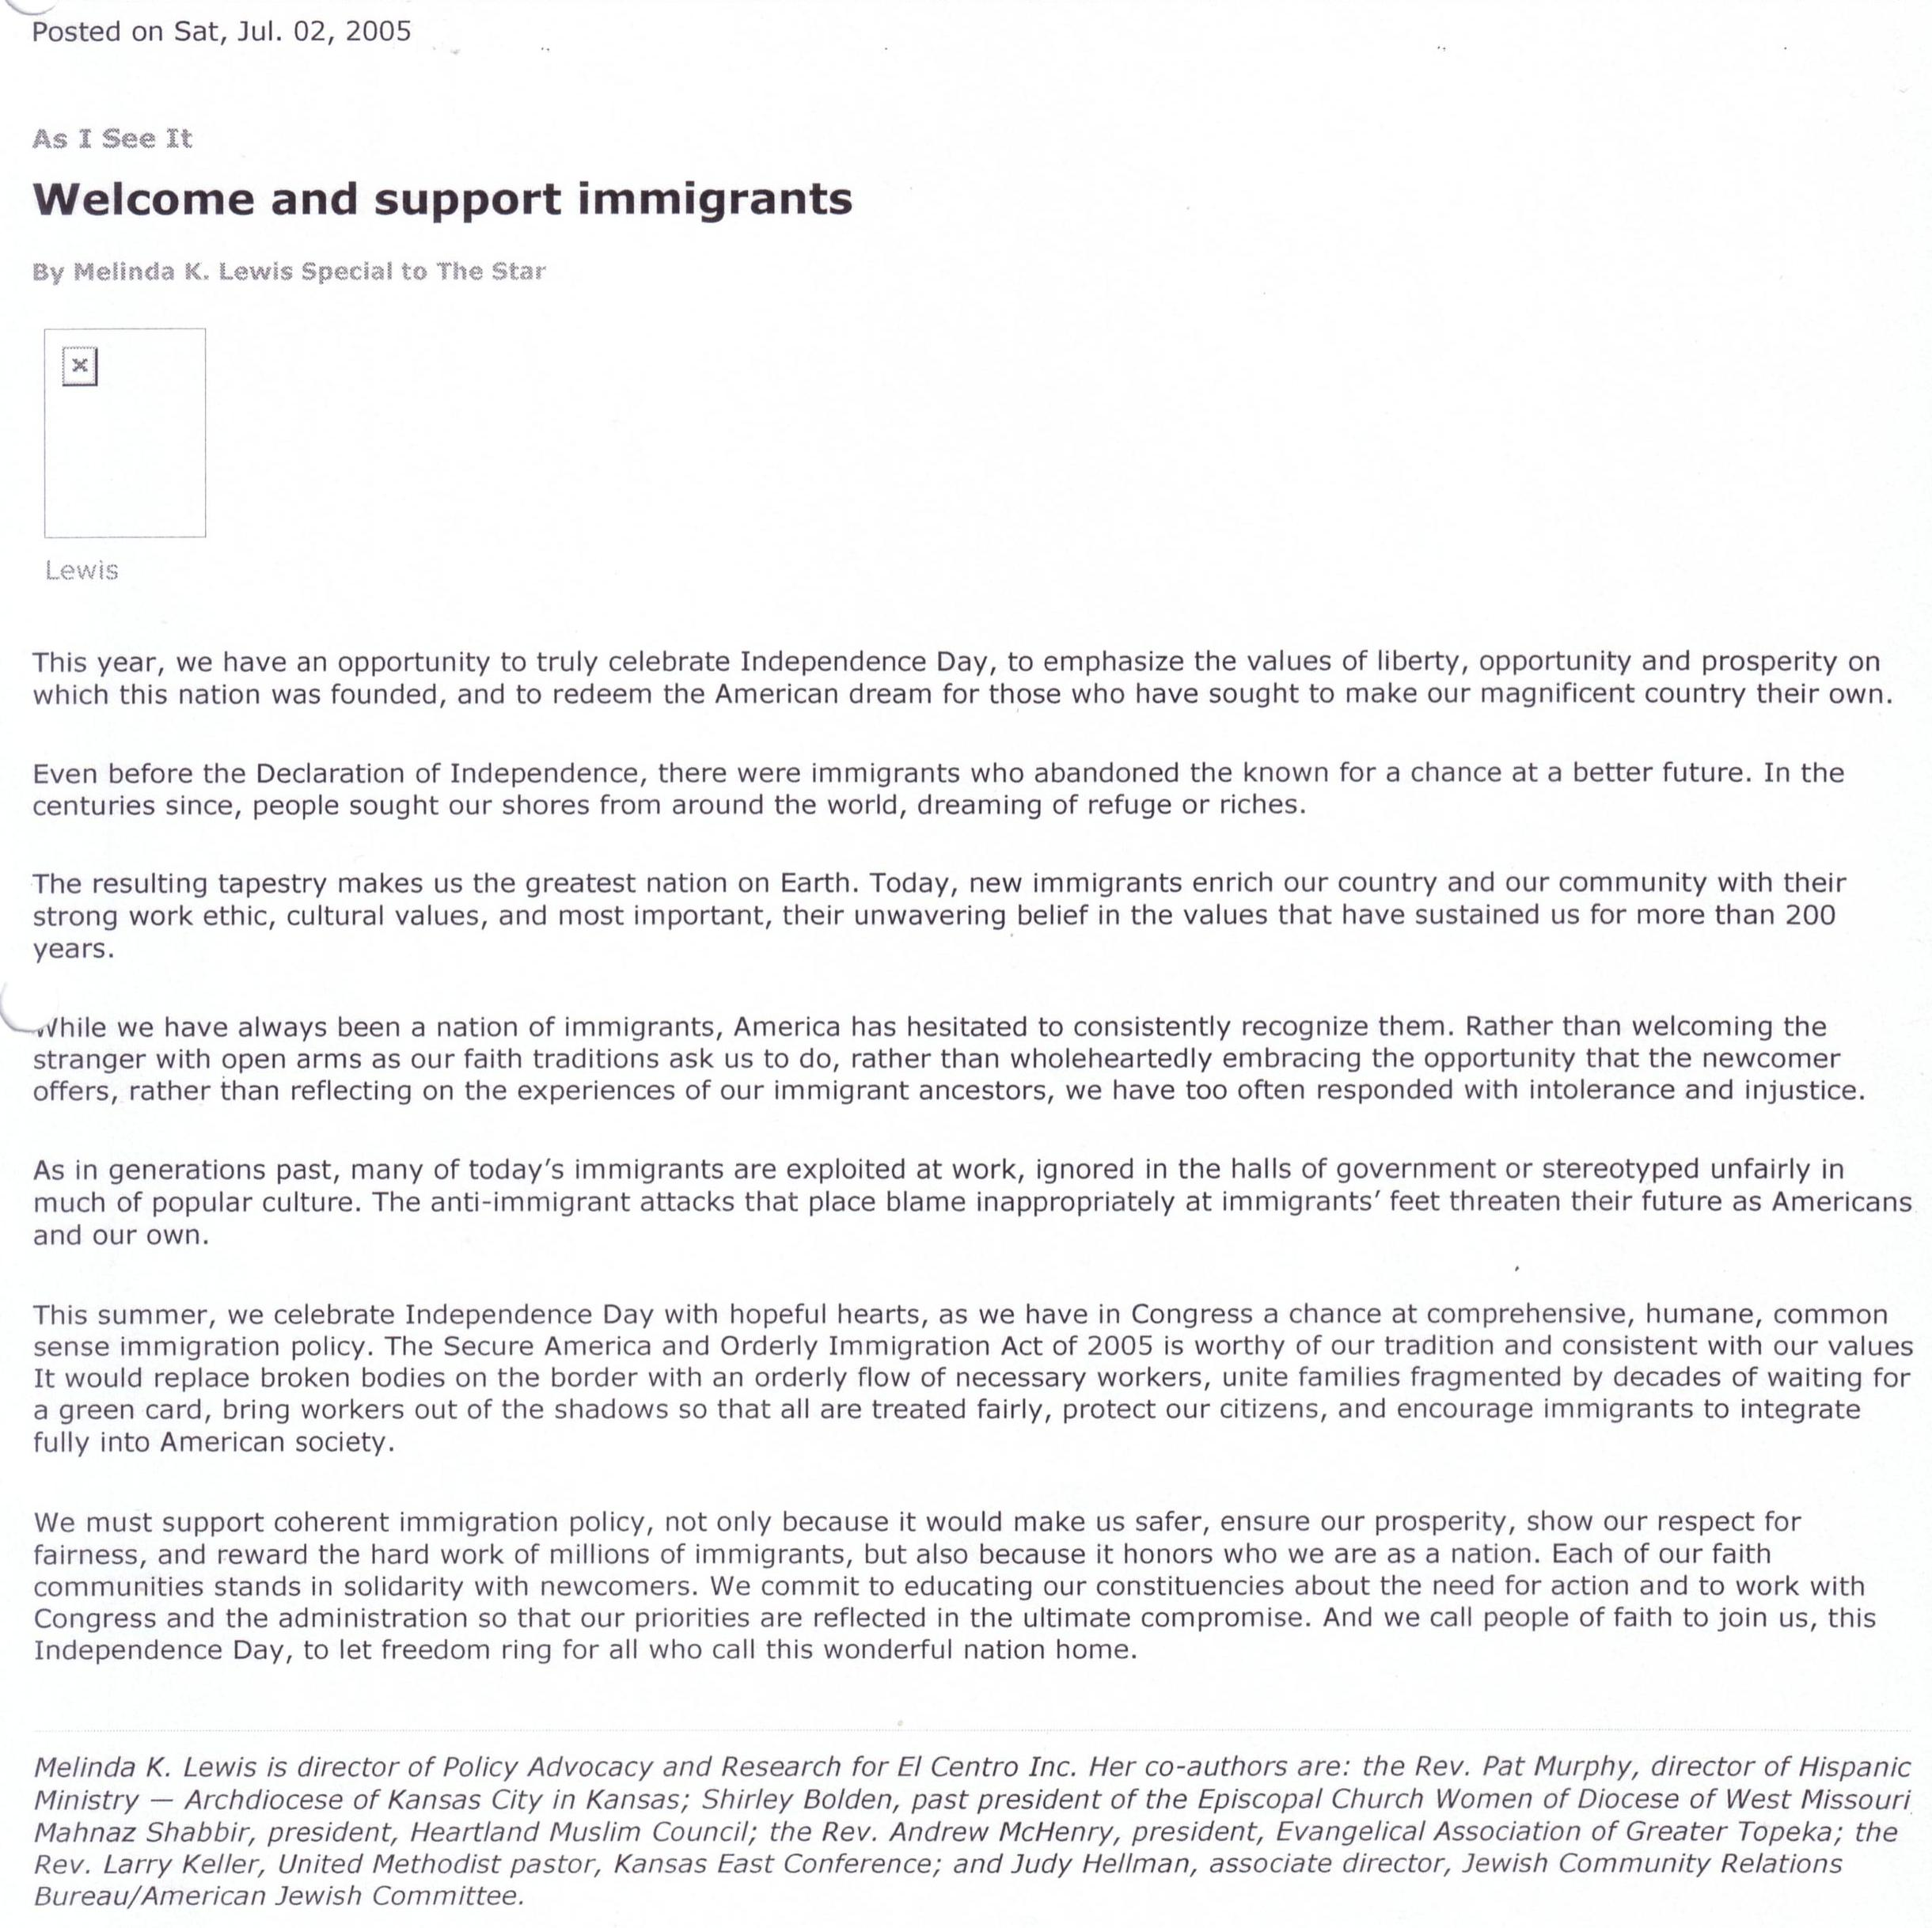 sample letters to the editor welcome and support immigrants